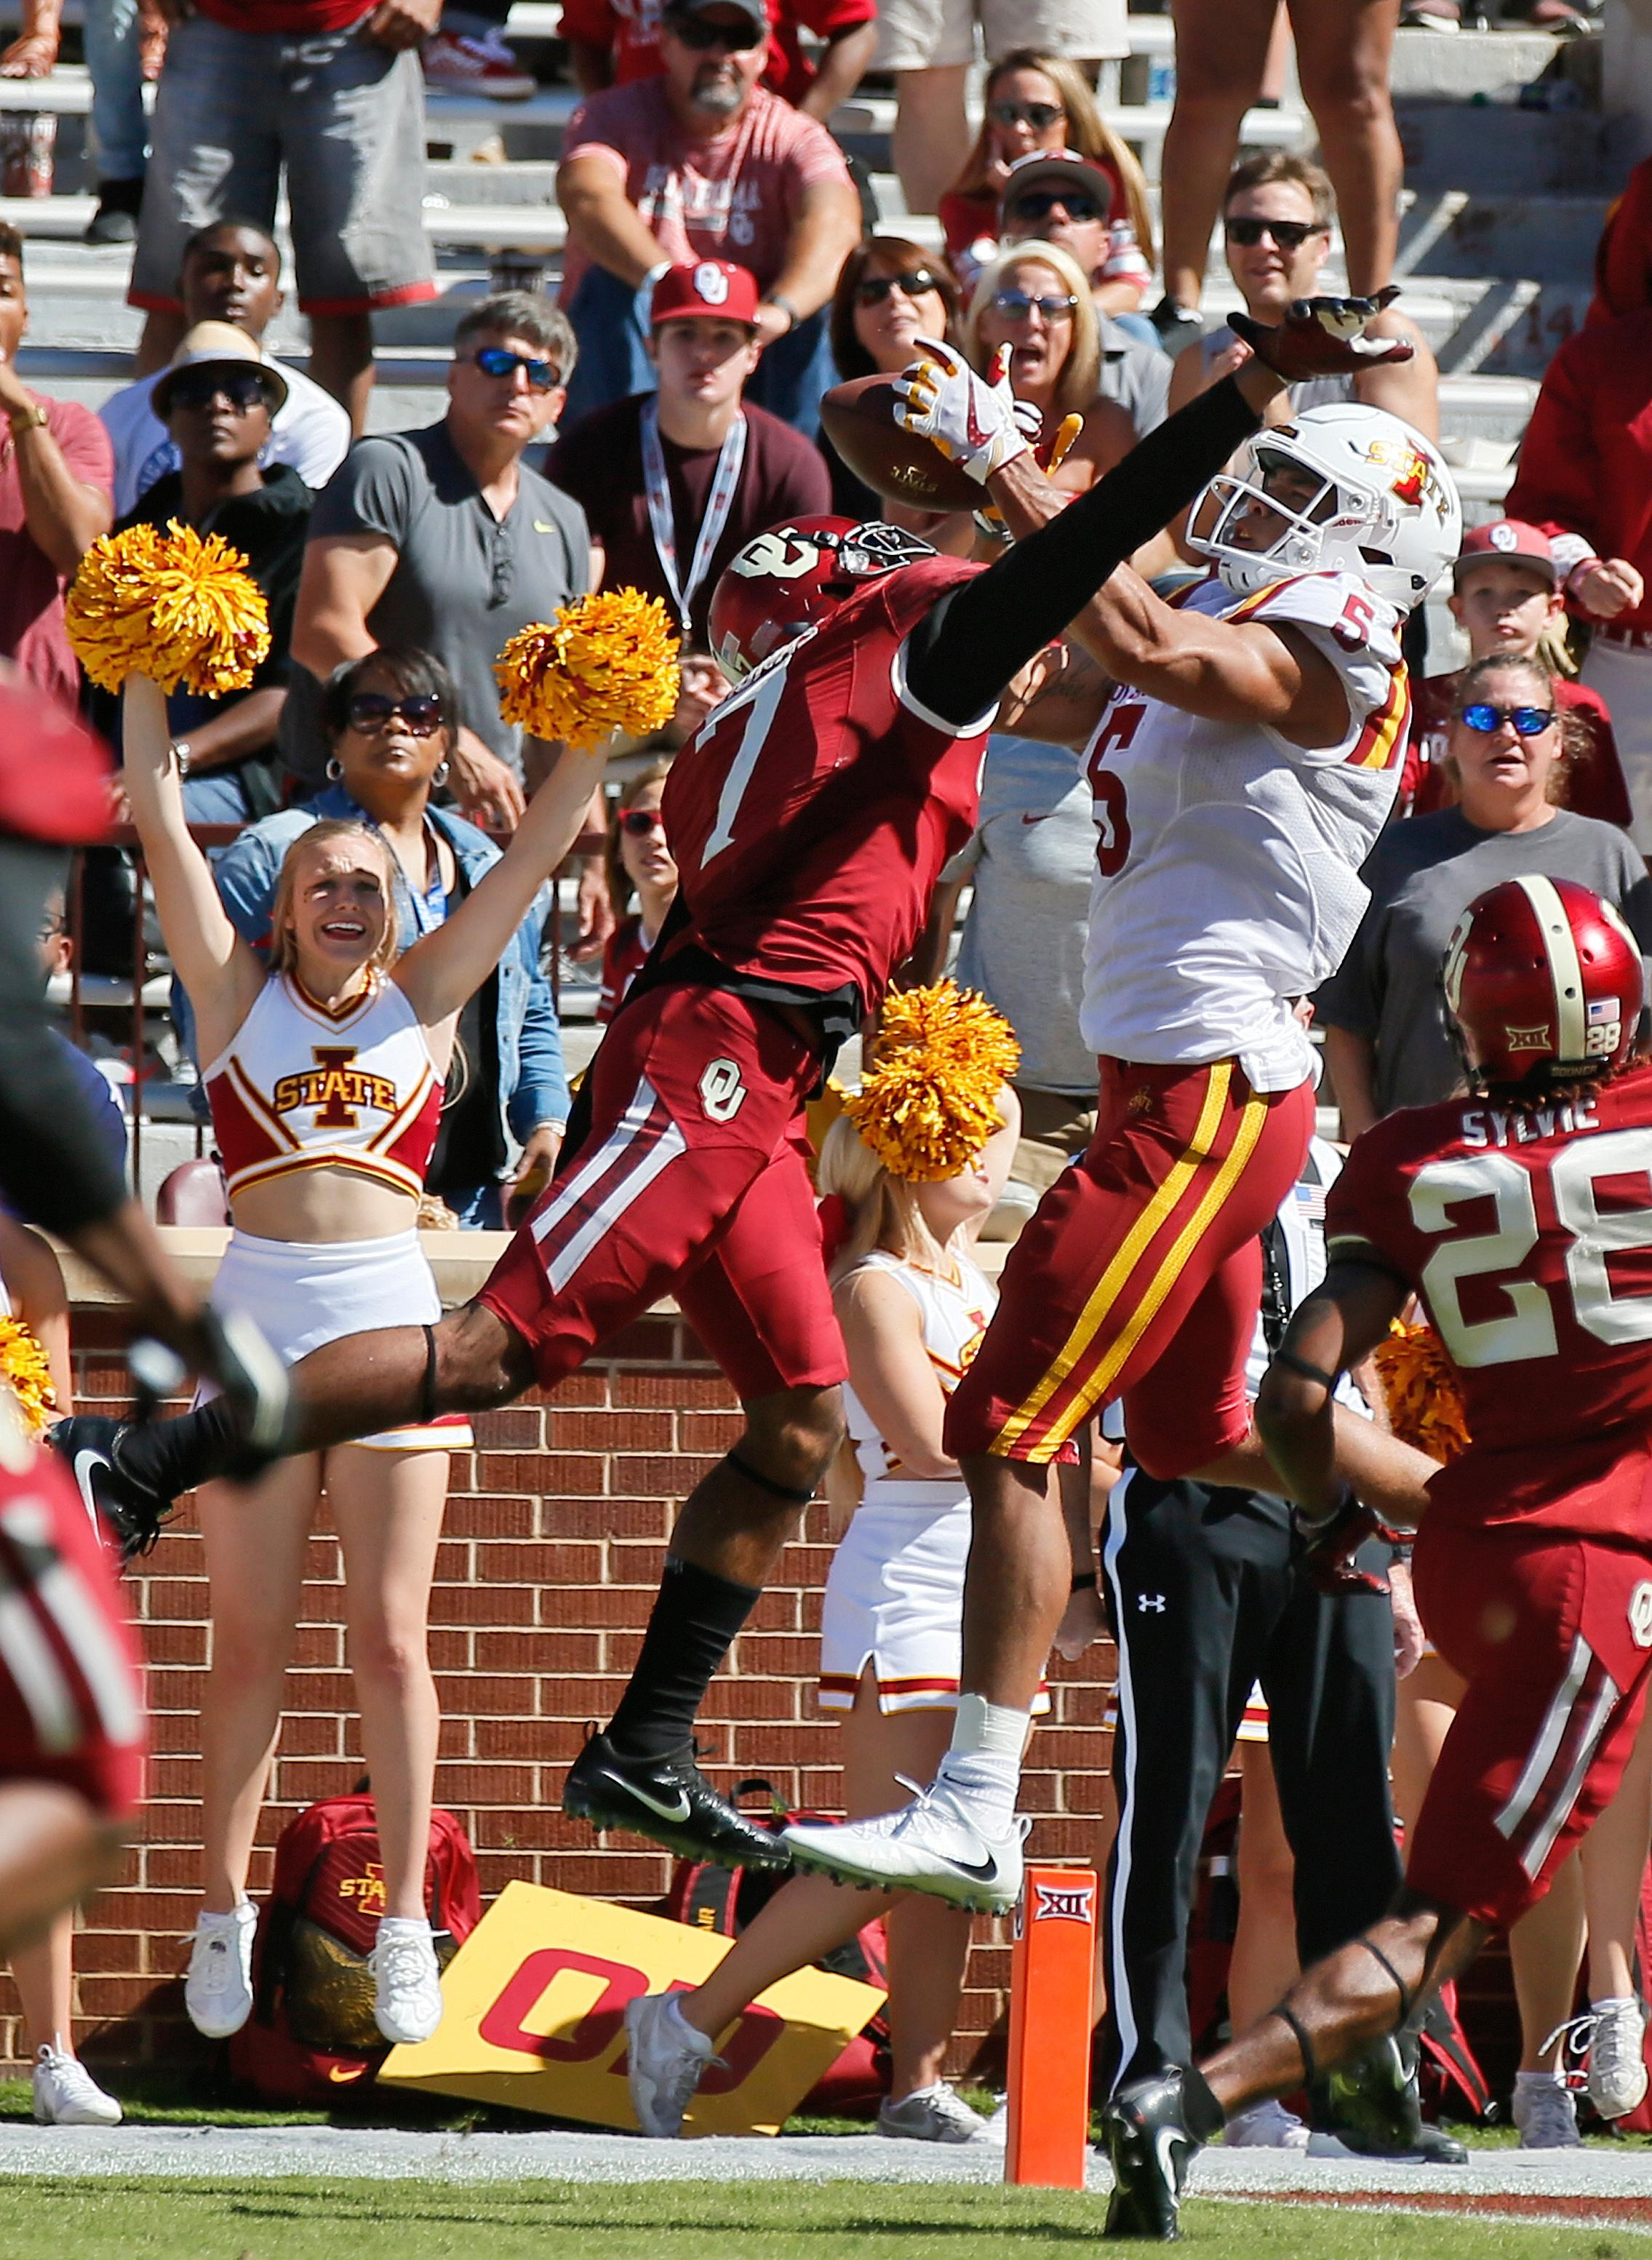 Iowa State wide receiver Allen Lazard (5) catches the game winning touchdown between Oklahoma cornerback Jordan Thomas (7) and safety Chanse Sylvie (28) in the fourth quarter of an NCAA college football game in Norman, Okla., Saturday, Oct. 7, 2017. Iowa State won 38-31. (AP Photo/Sue Ogrocki)